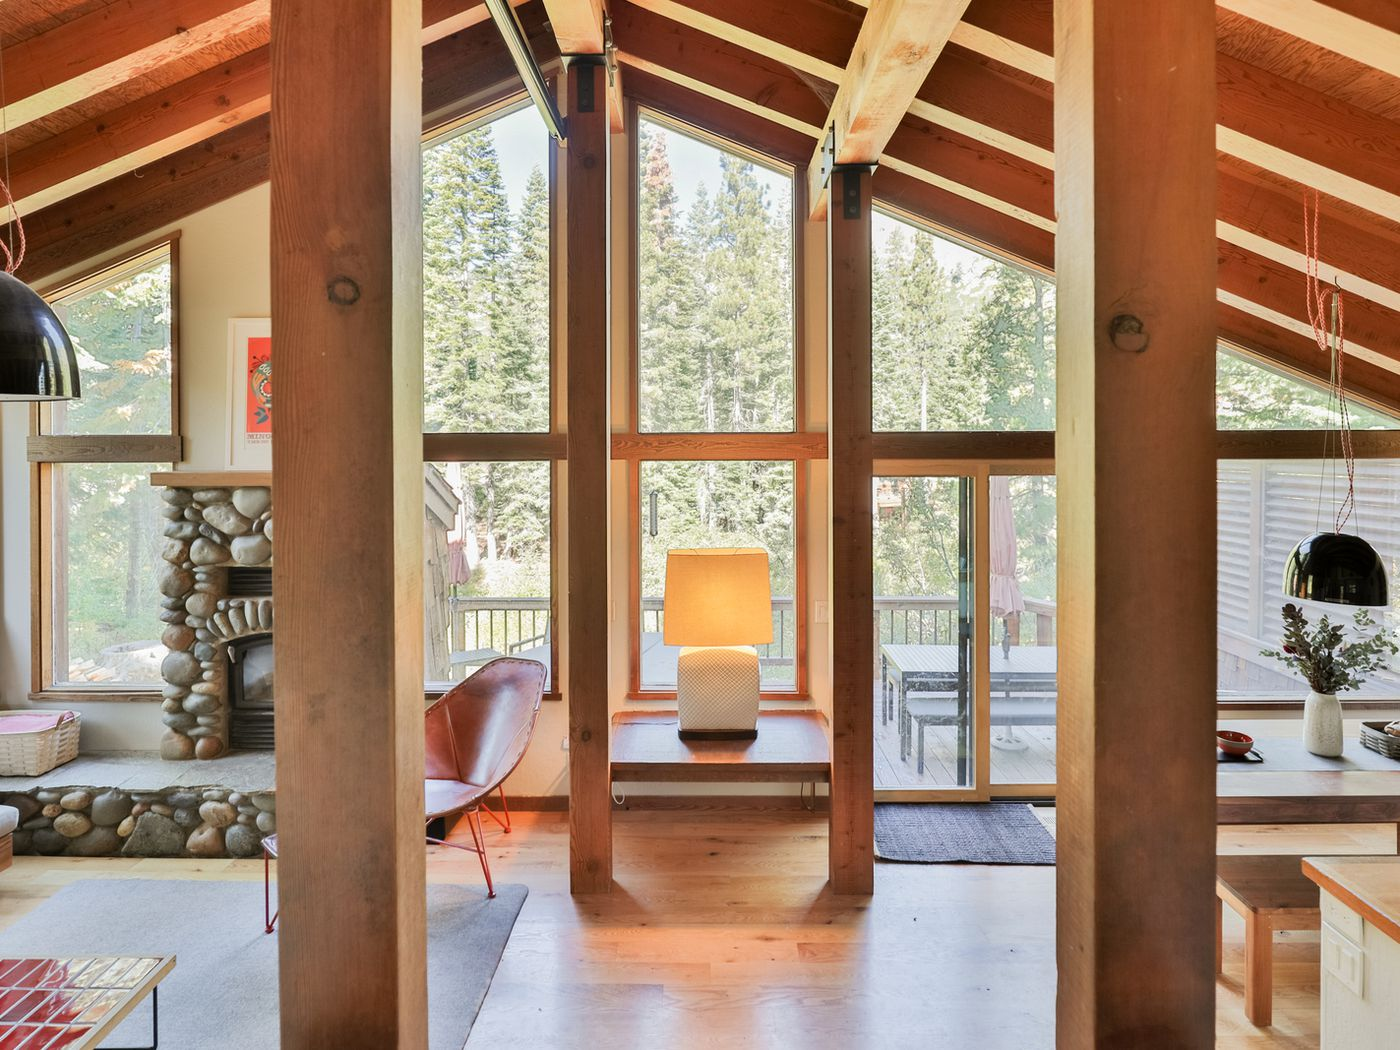 Lake Tahoe Cabin Decked Out In Heath Ceramics Style For Rent Curbed Sf